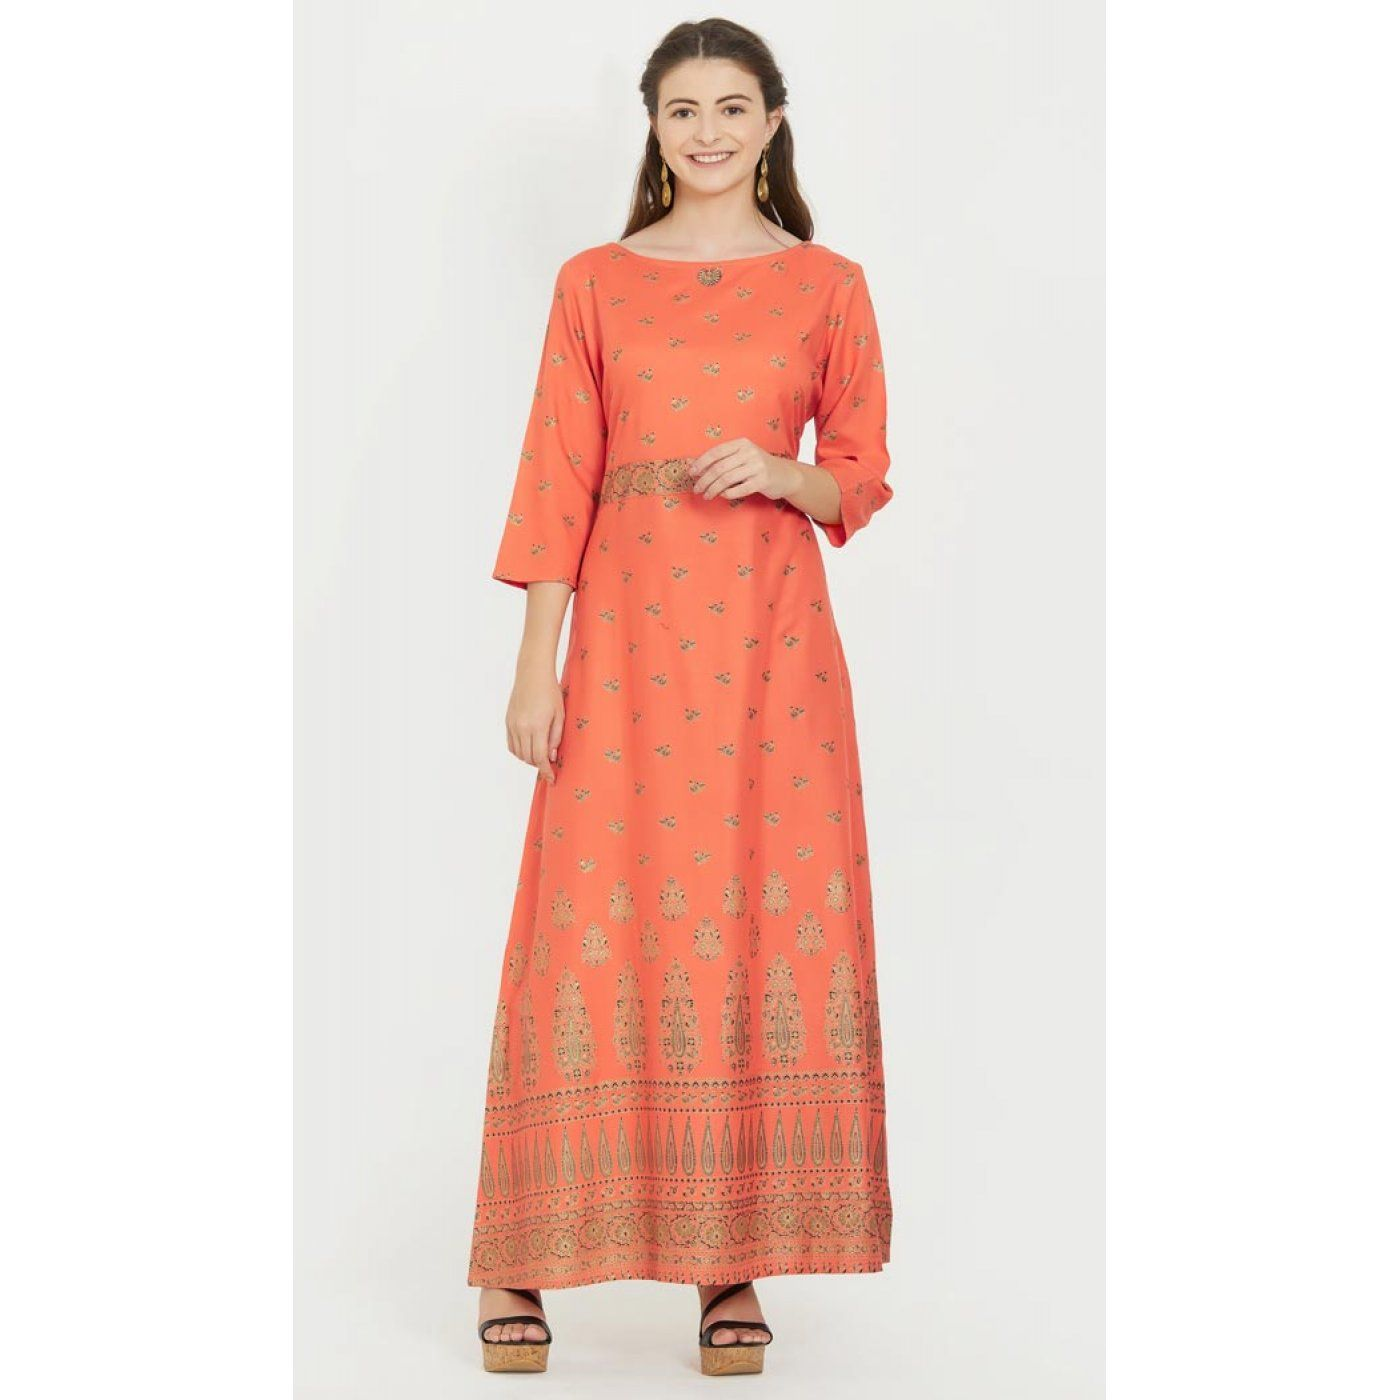 64def3e2cddb13 Charming Orange Color Rayon Party Wear Ready Made Kurtis For Girls -  404548827 30% OFF Sale  kurtis  tops  kurta  readymadekurti  fashiontops   indiankurta ...